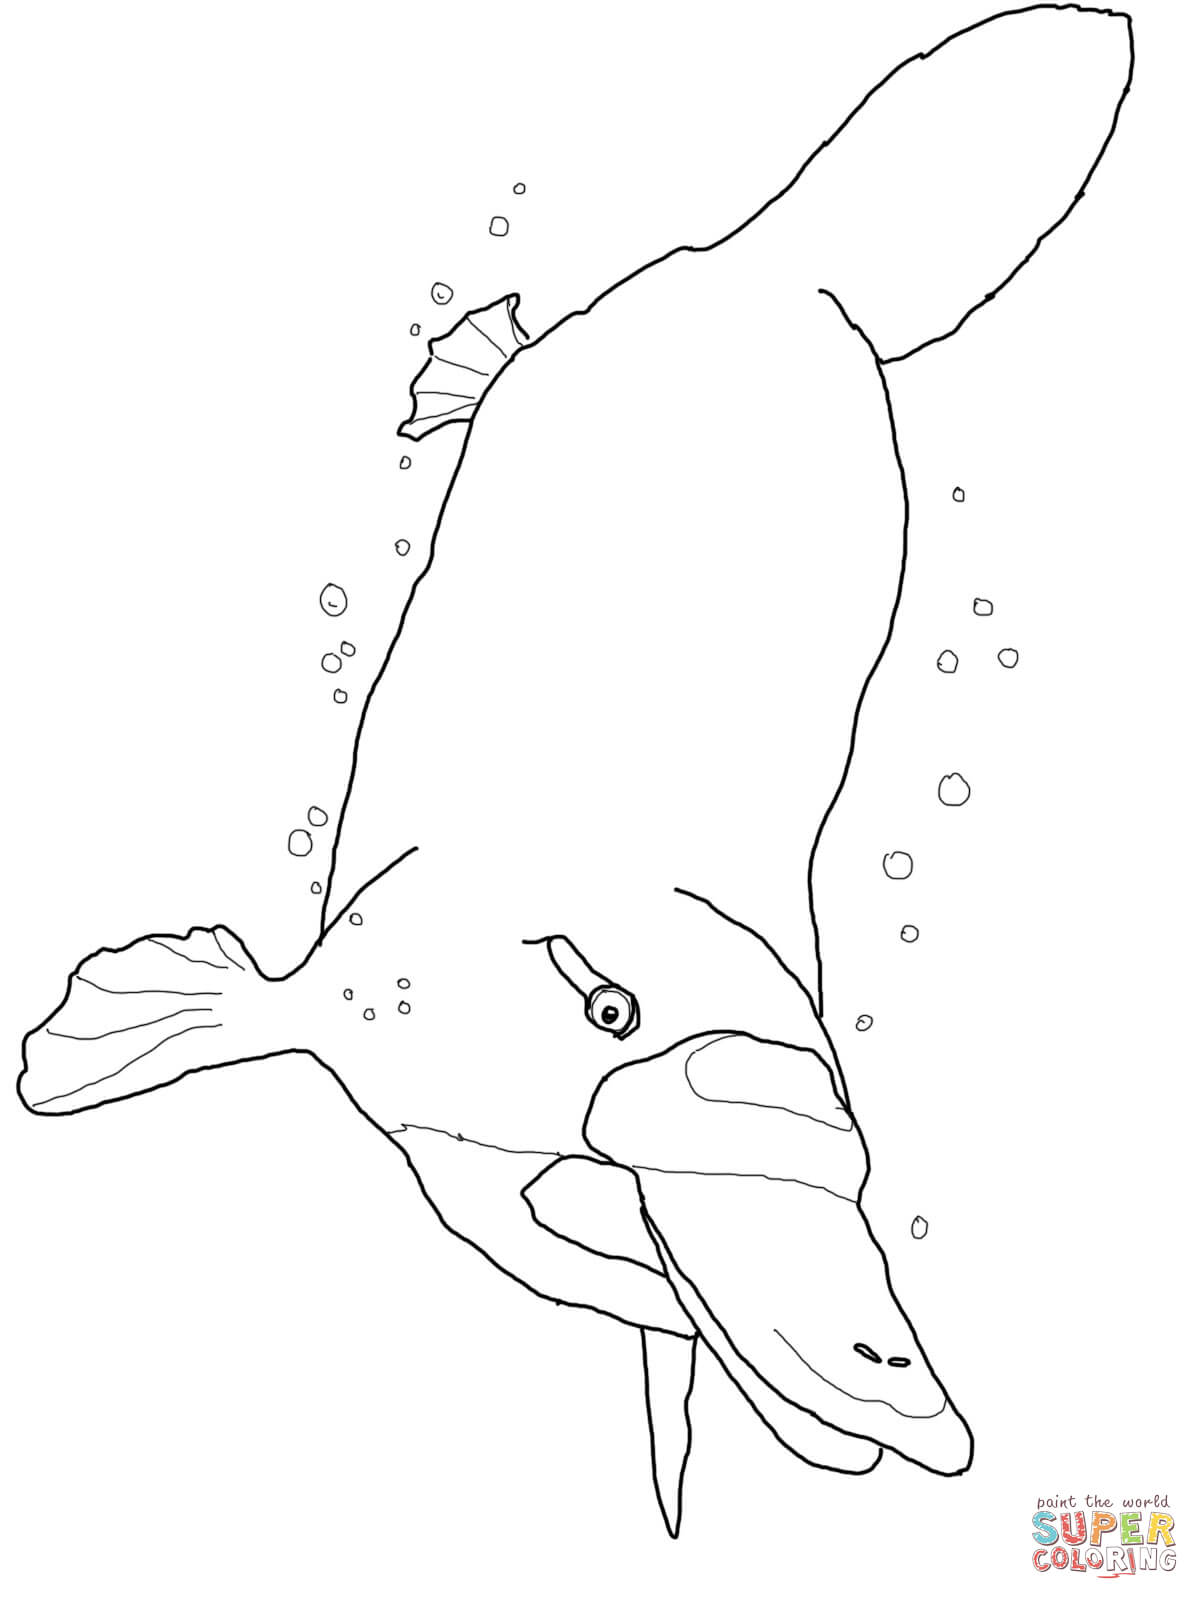 duck billed platypus coloring page platypus on a bank coloring page free printable coloring platypus coloring duck page billed